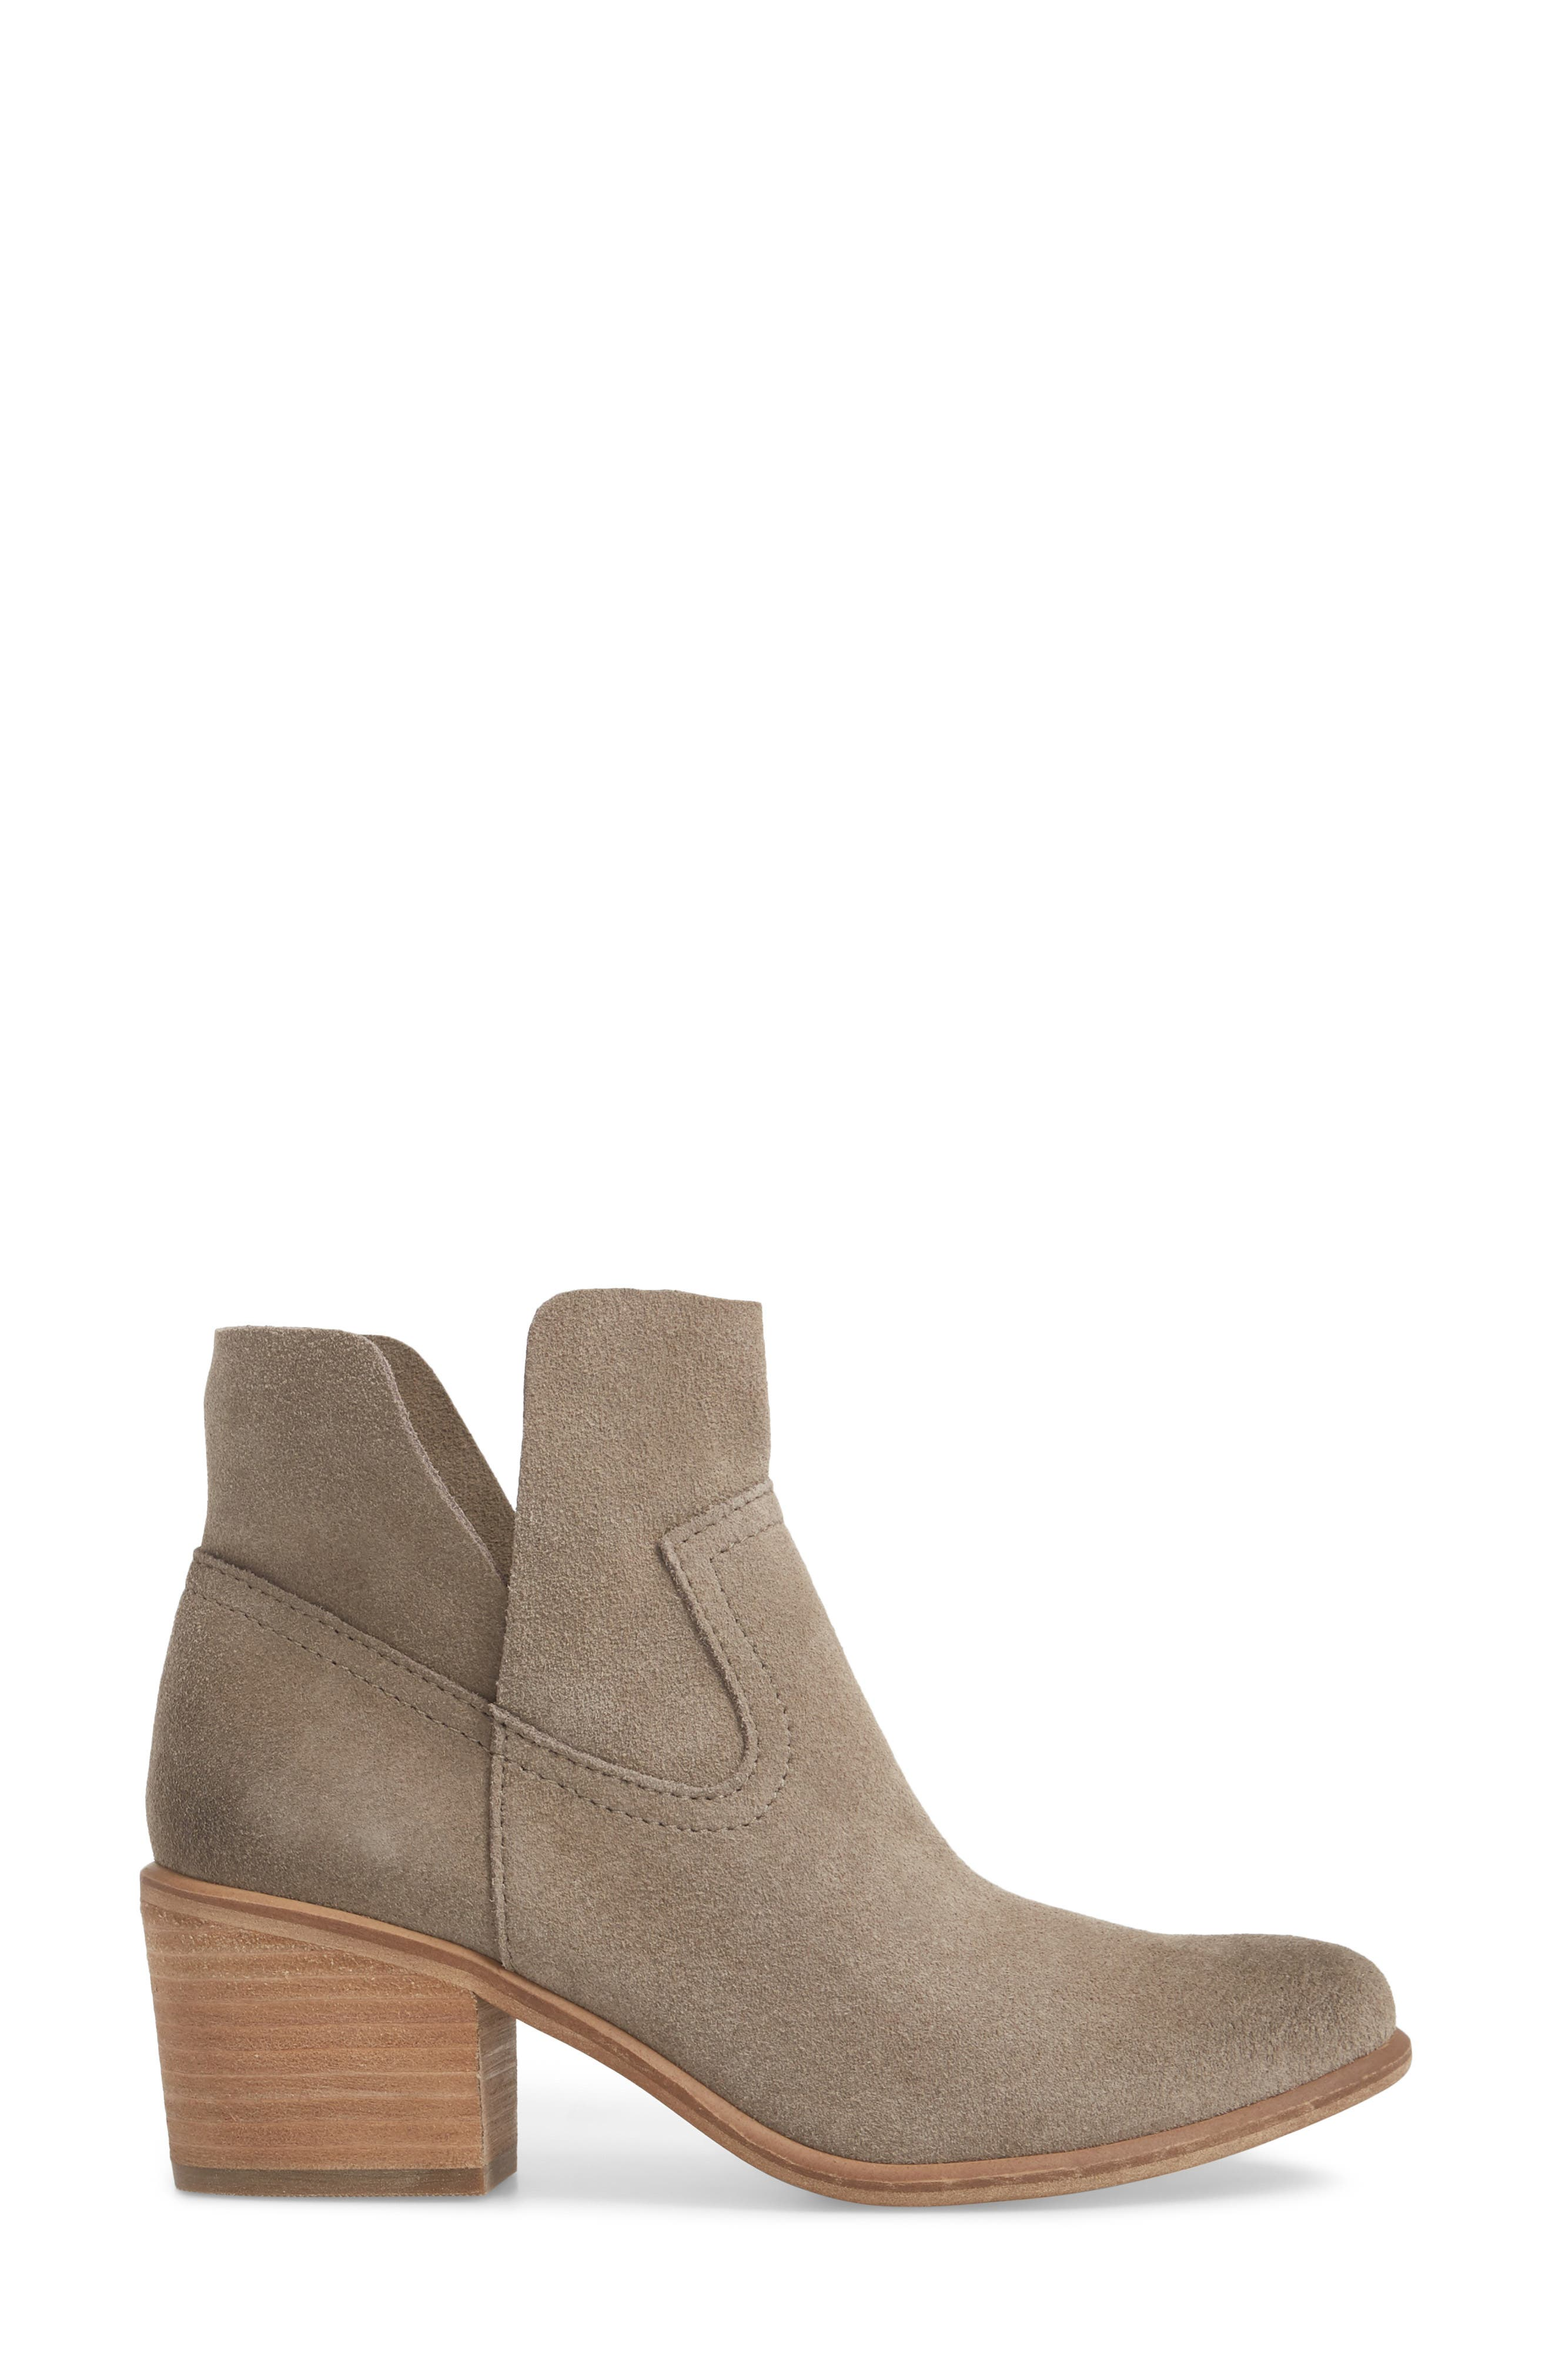 Brice Notched Bootie,                             Alternate thumbnail 3, color,                             Grey Suede